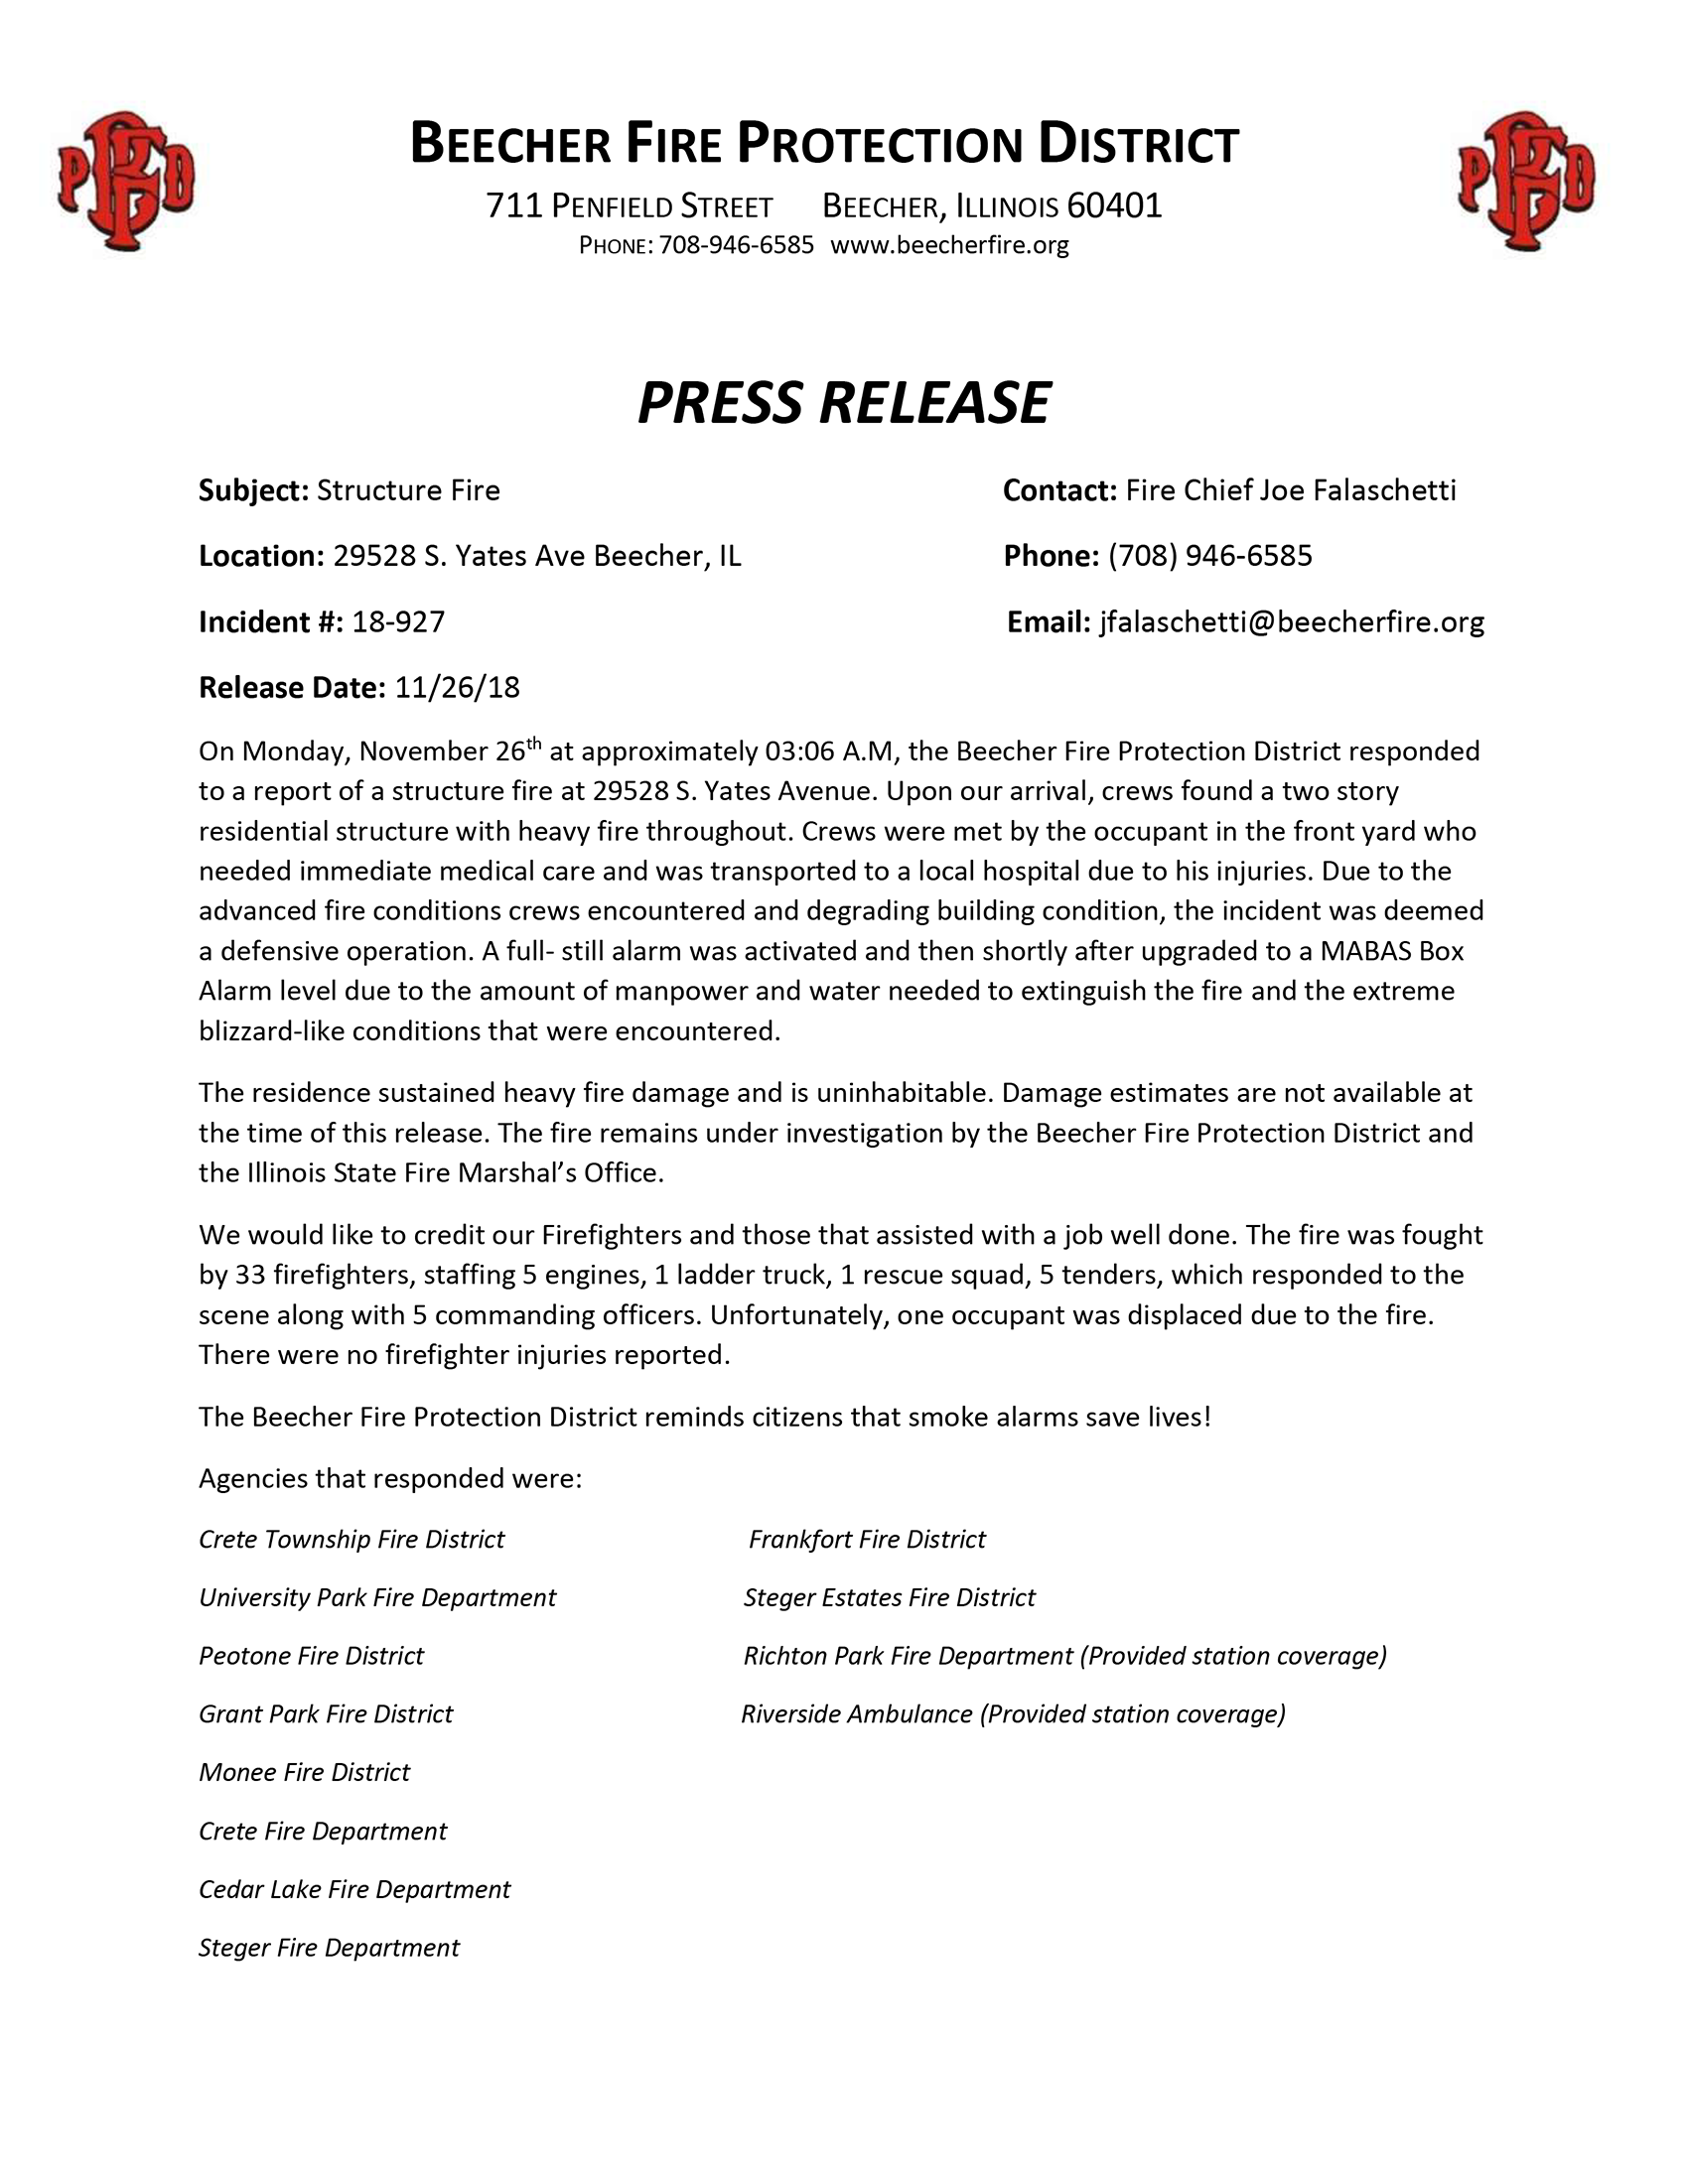 Beecher Fire Protection District press release for house fire